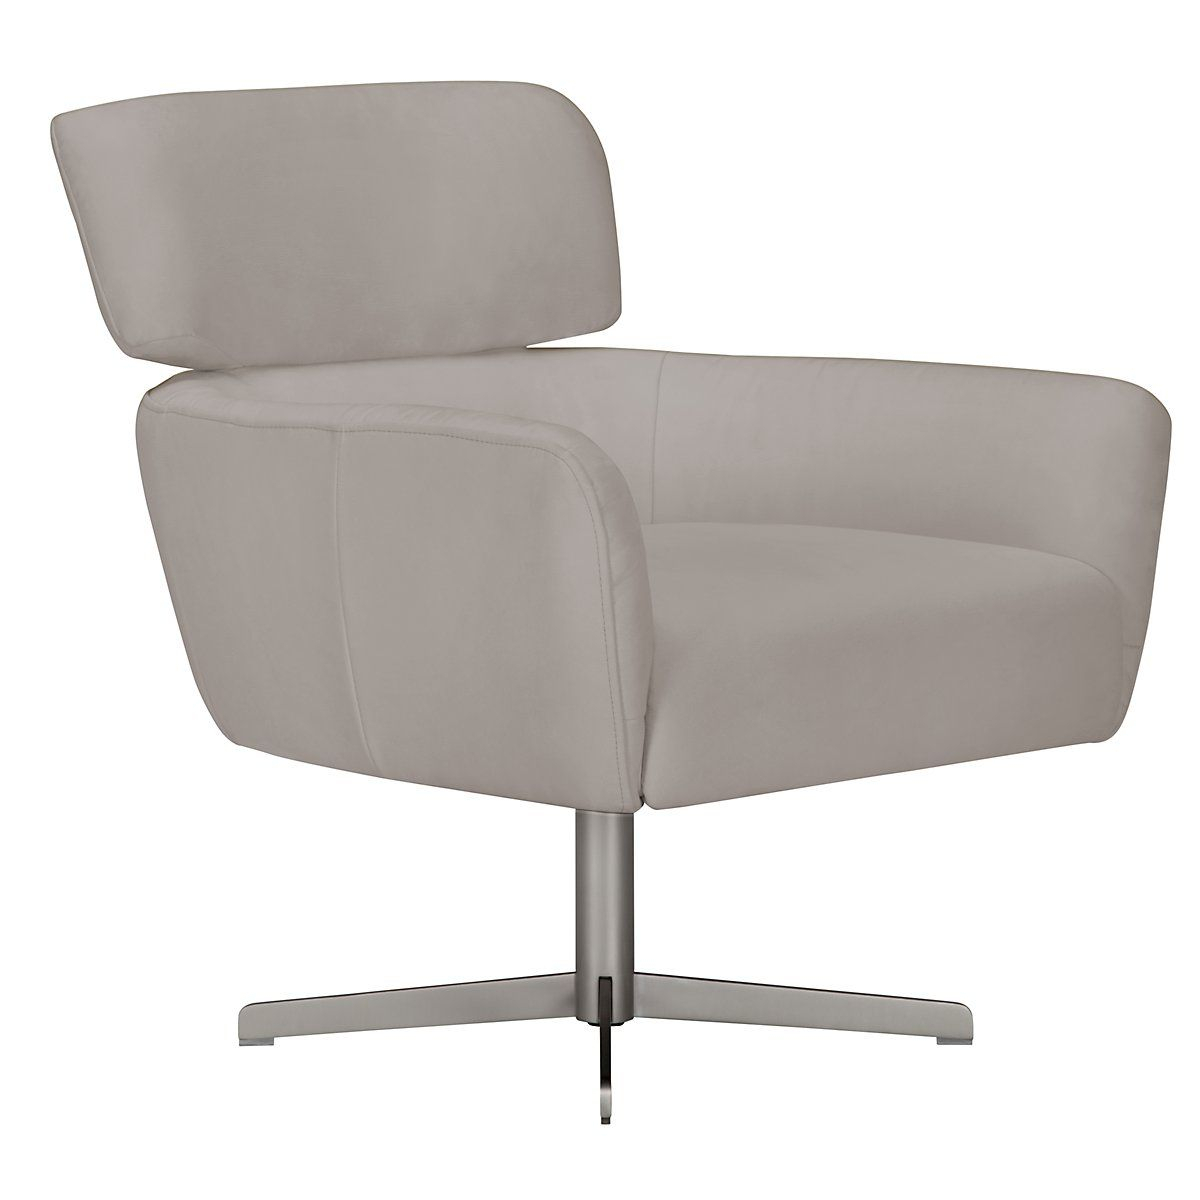 Wynn Light Gray Microfiber Swivel Accent Chair | Living Room With Regard To Aidan Ii Swivel Accent Chairs (View 5 of 20)